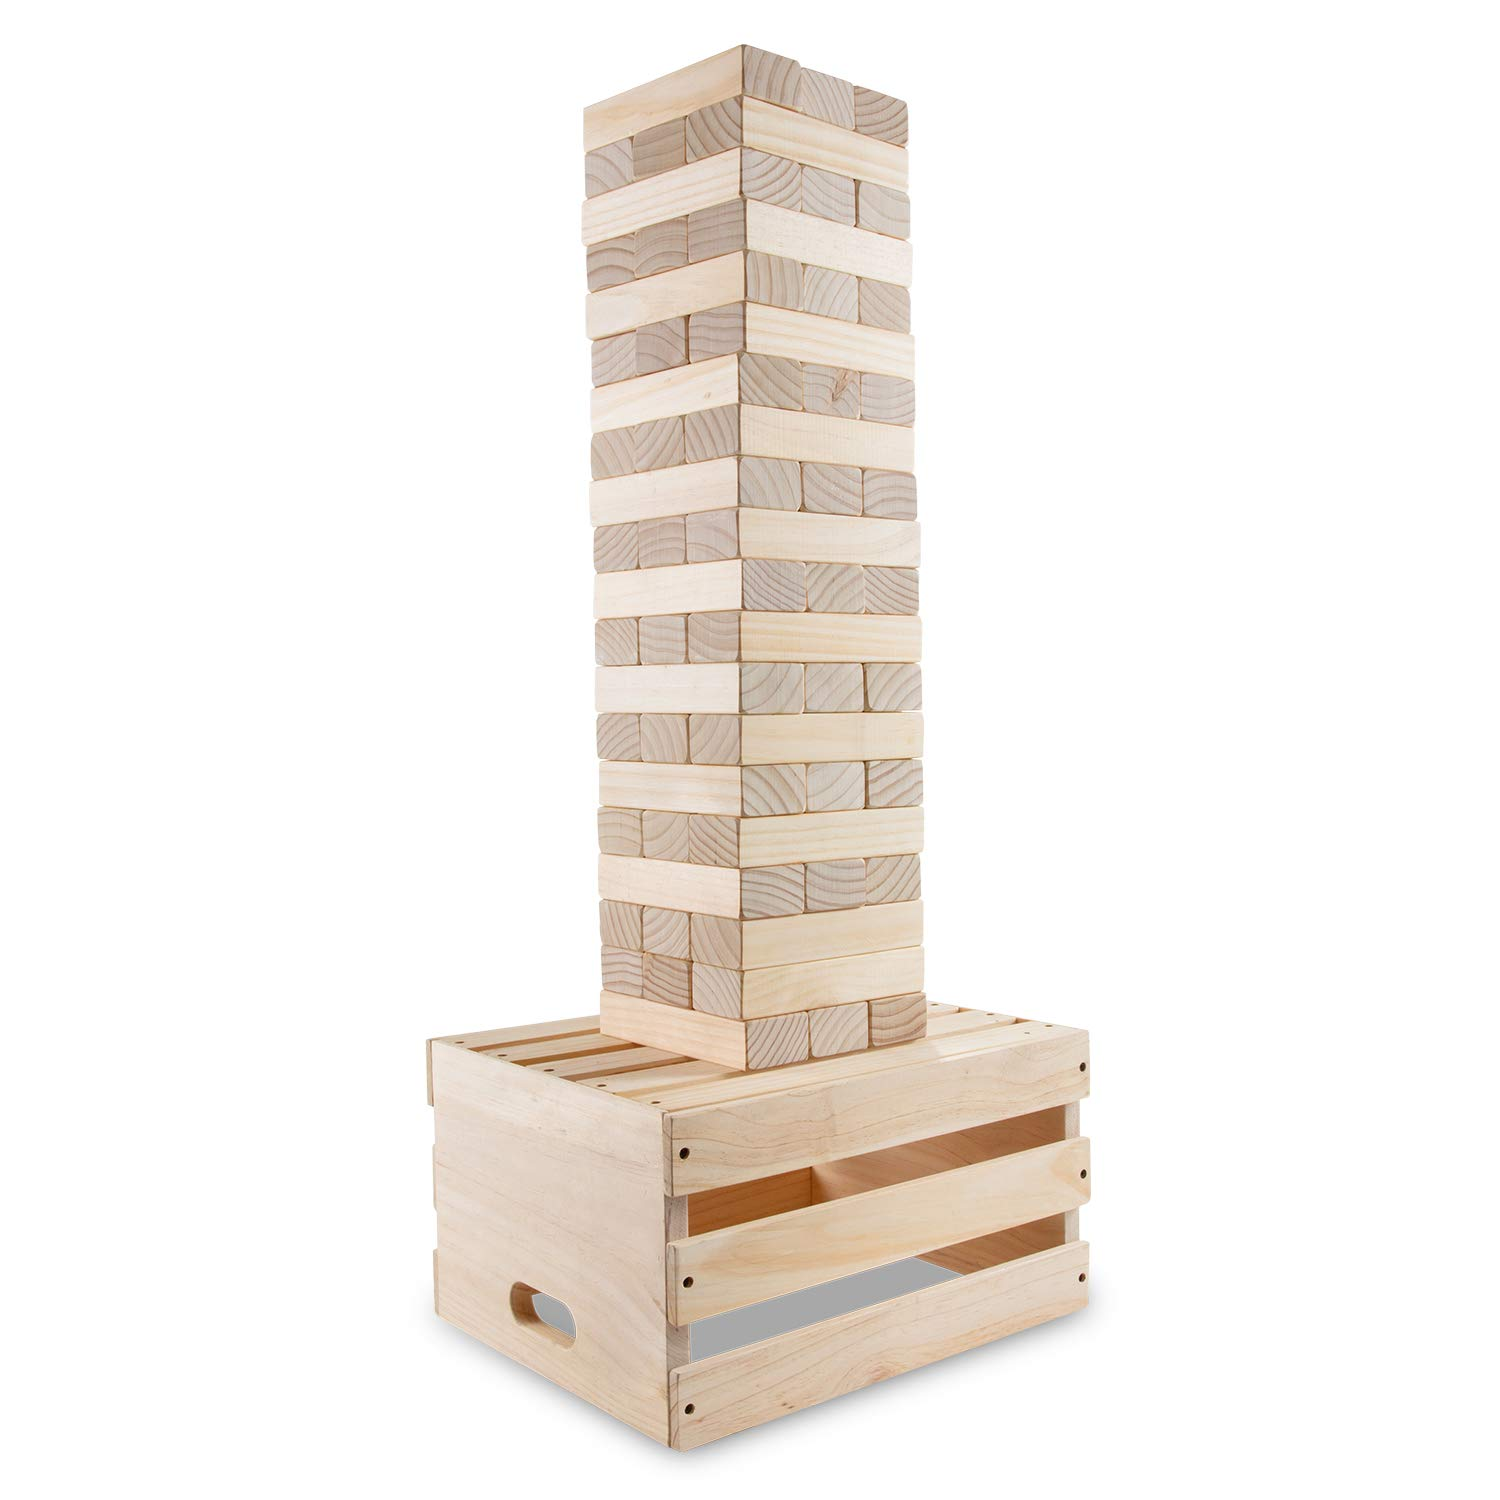 Sunny & Fun Giant Toppling Tower - 60 Jumbo Wooden Blocks Stacks to 5+ Feet - Oversized Indoor & Outdoor Stacking Game for Adults & Kids w/ 2-in-1 Storage & Table Crate - for Party Yard Lawn Backyard by Sunny & Fun